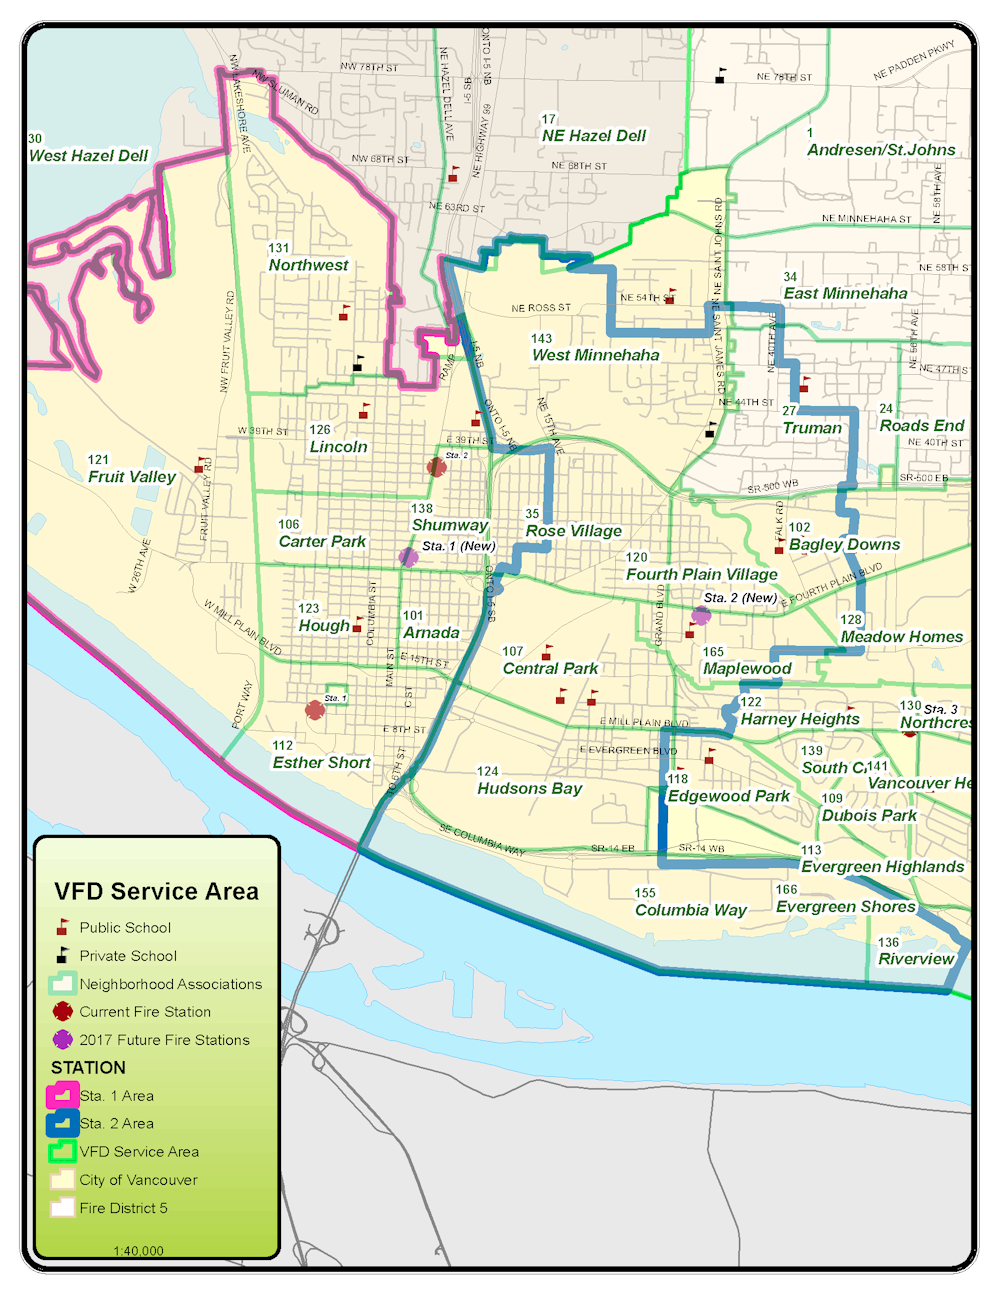 View A Larger Service Area Map